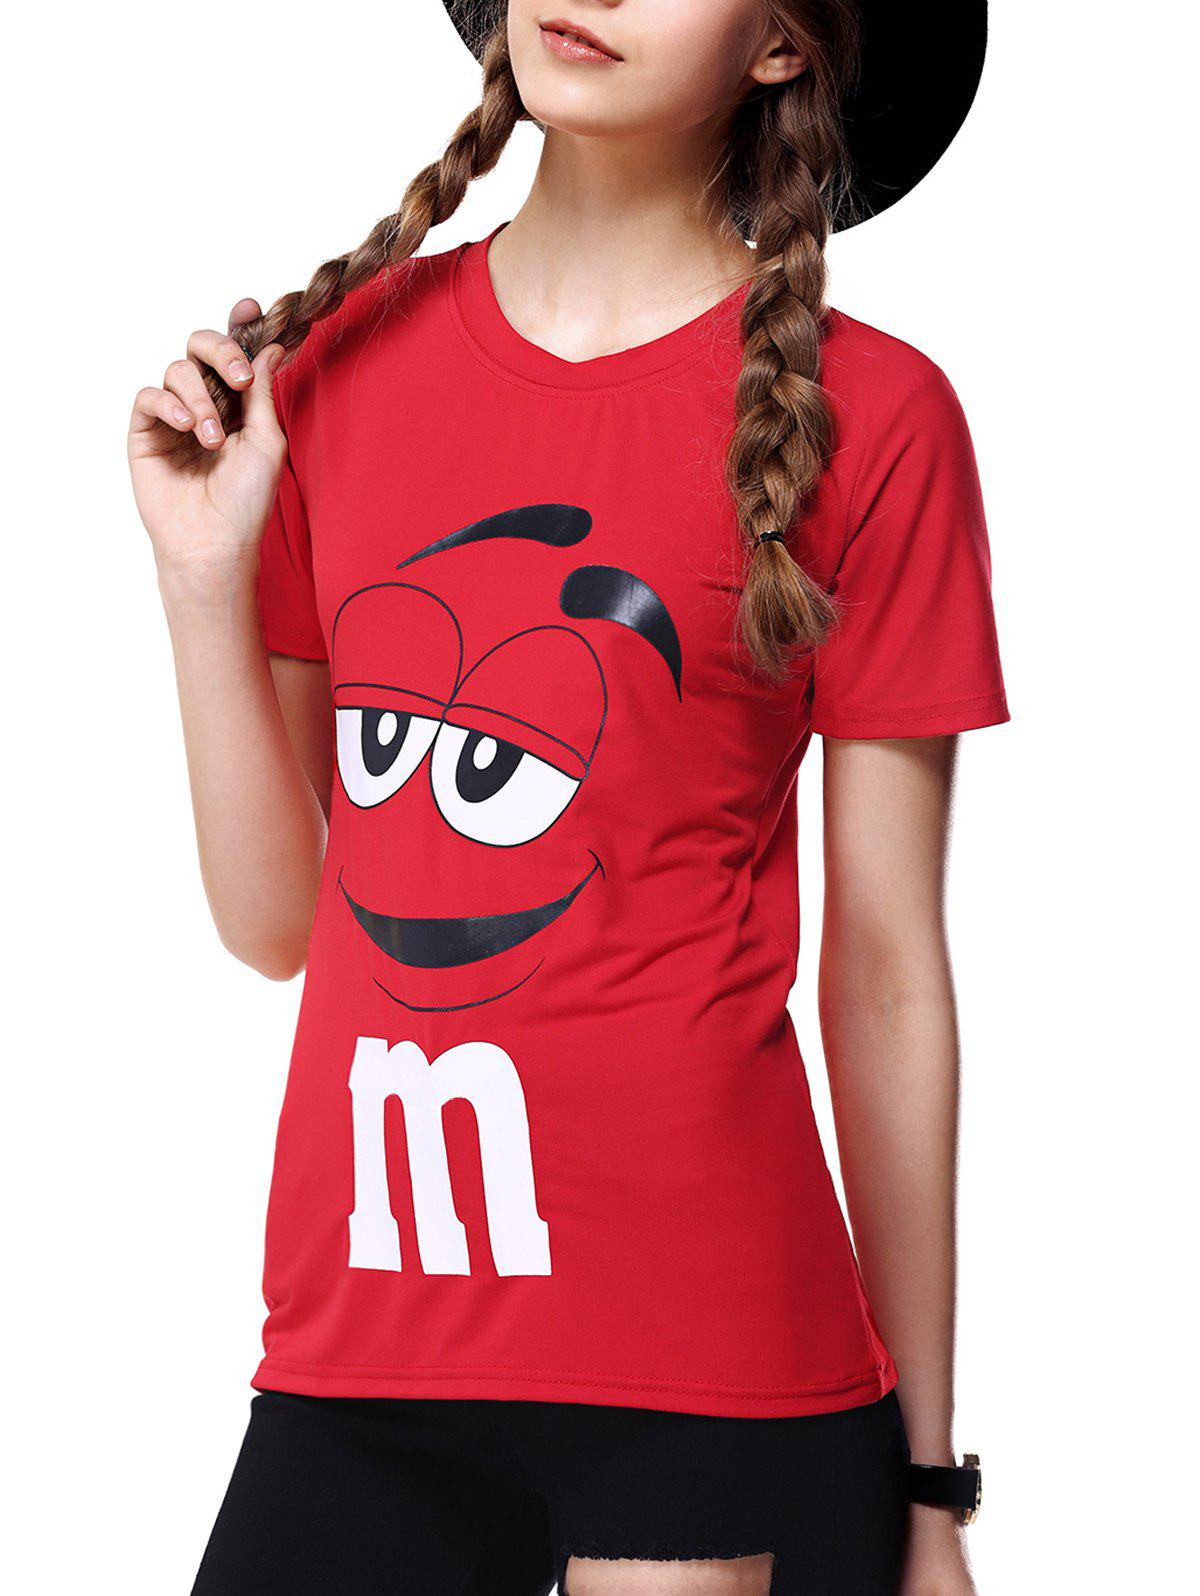 Cute Round Collar Cartoon Print Slimming Women's T-Shirt - RED XL